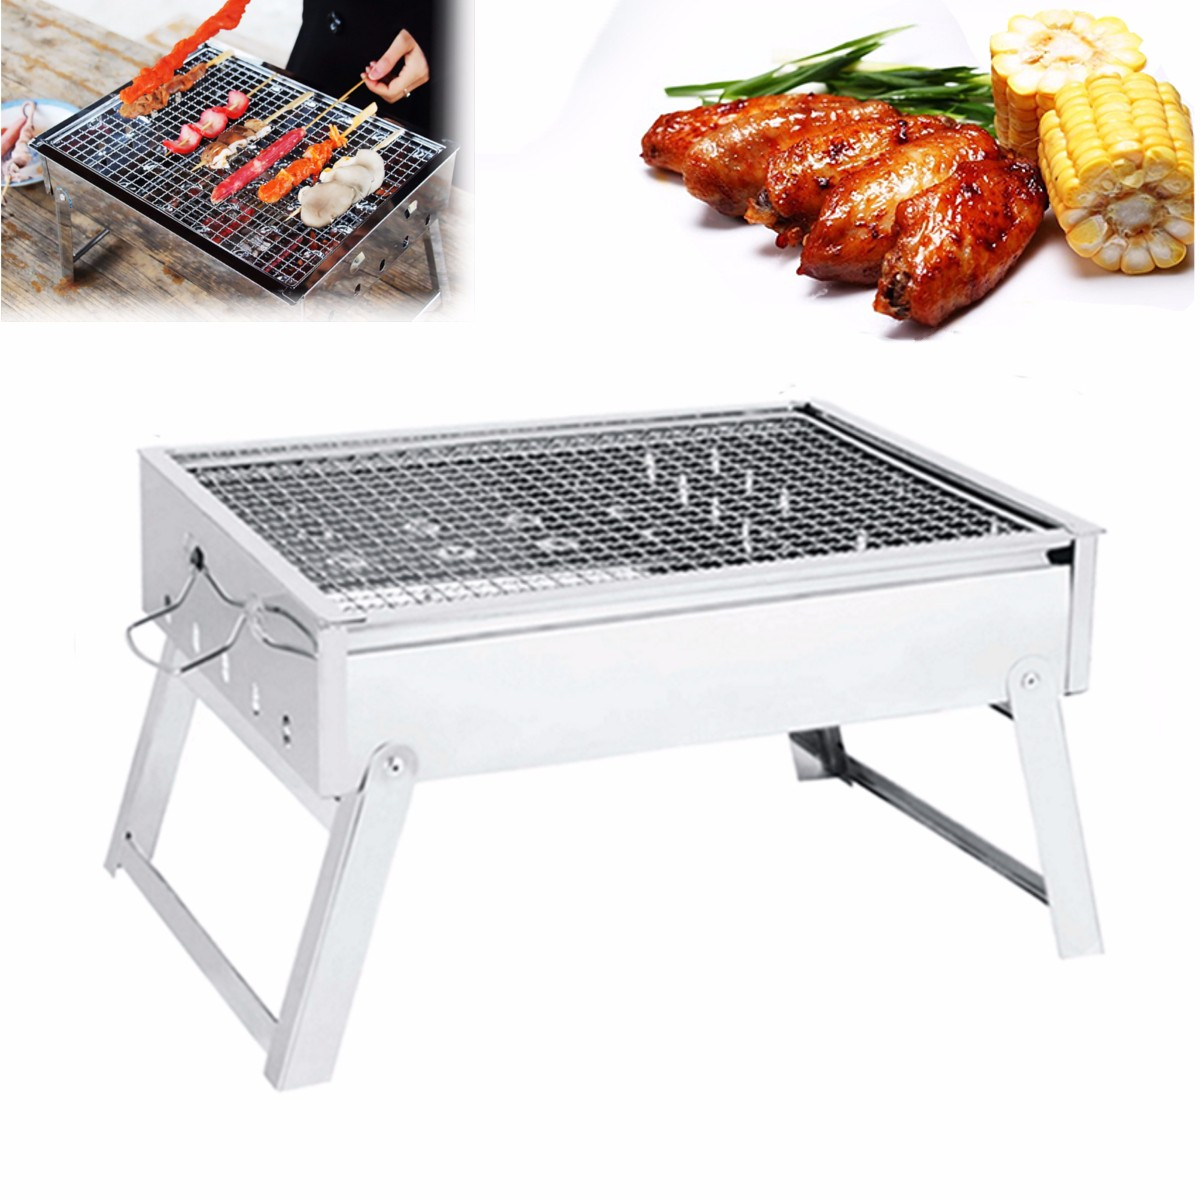 Grill Camping Ipree Portable Folding Charcoal Stove Barbecue Oven Cooking Picnic Camping Bbq Grill Camping Shop